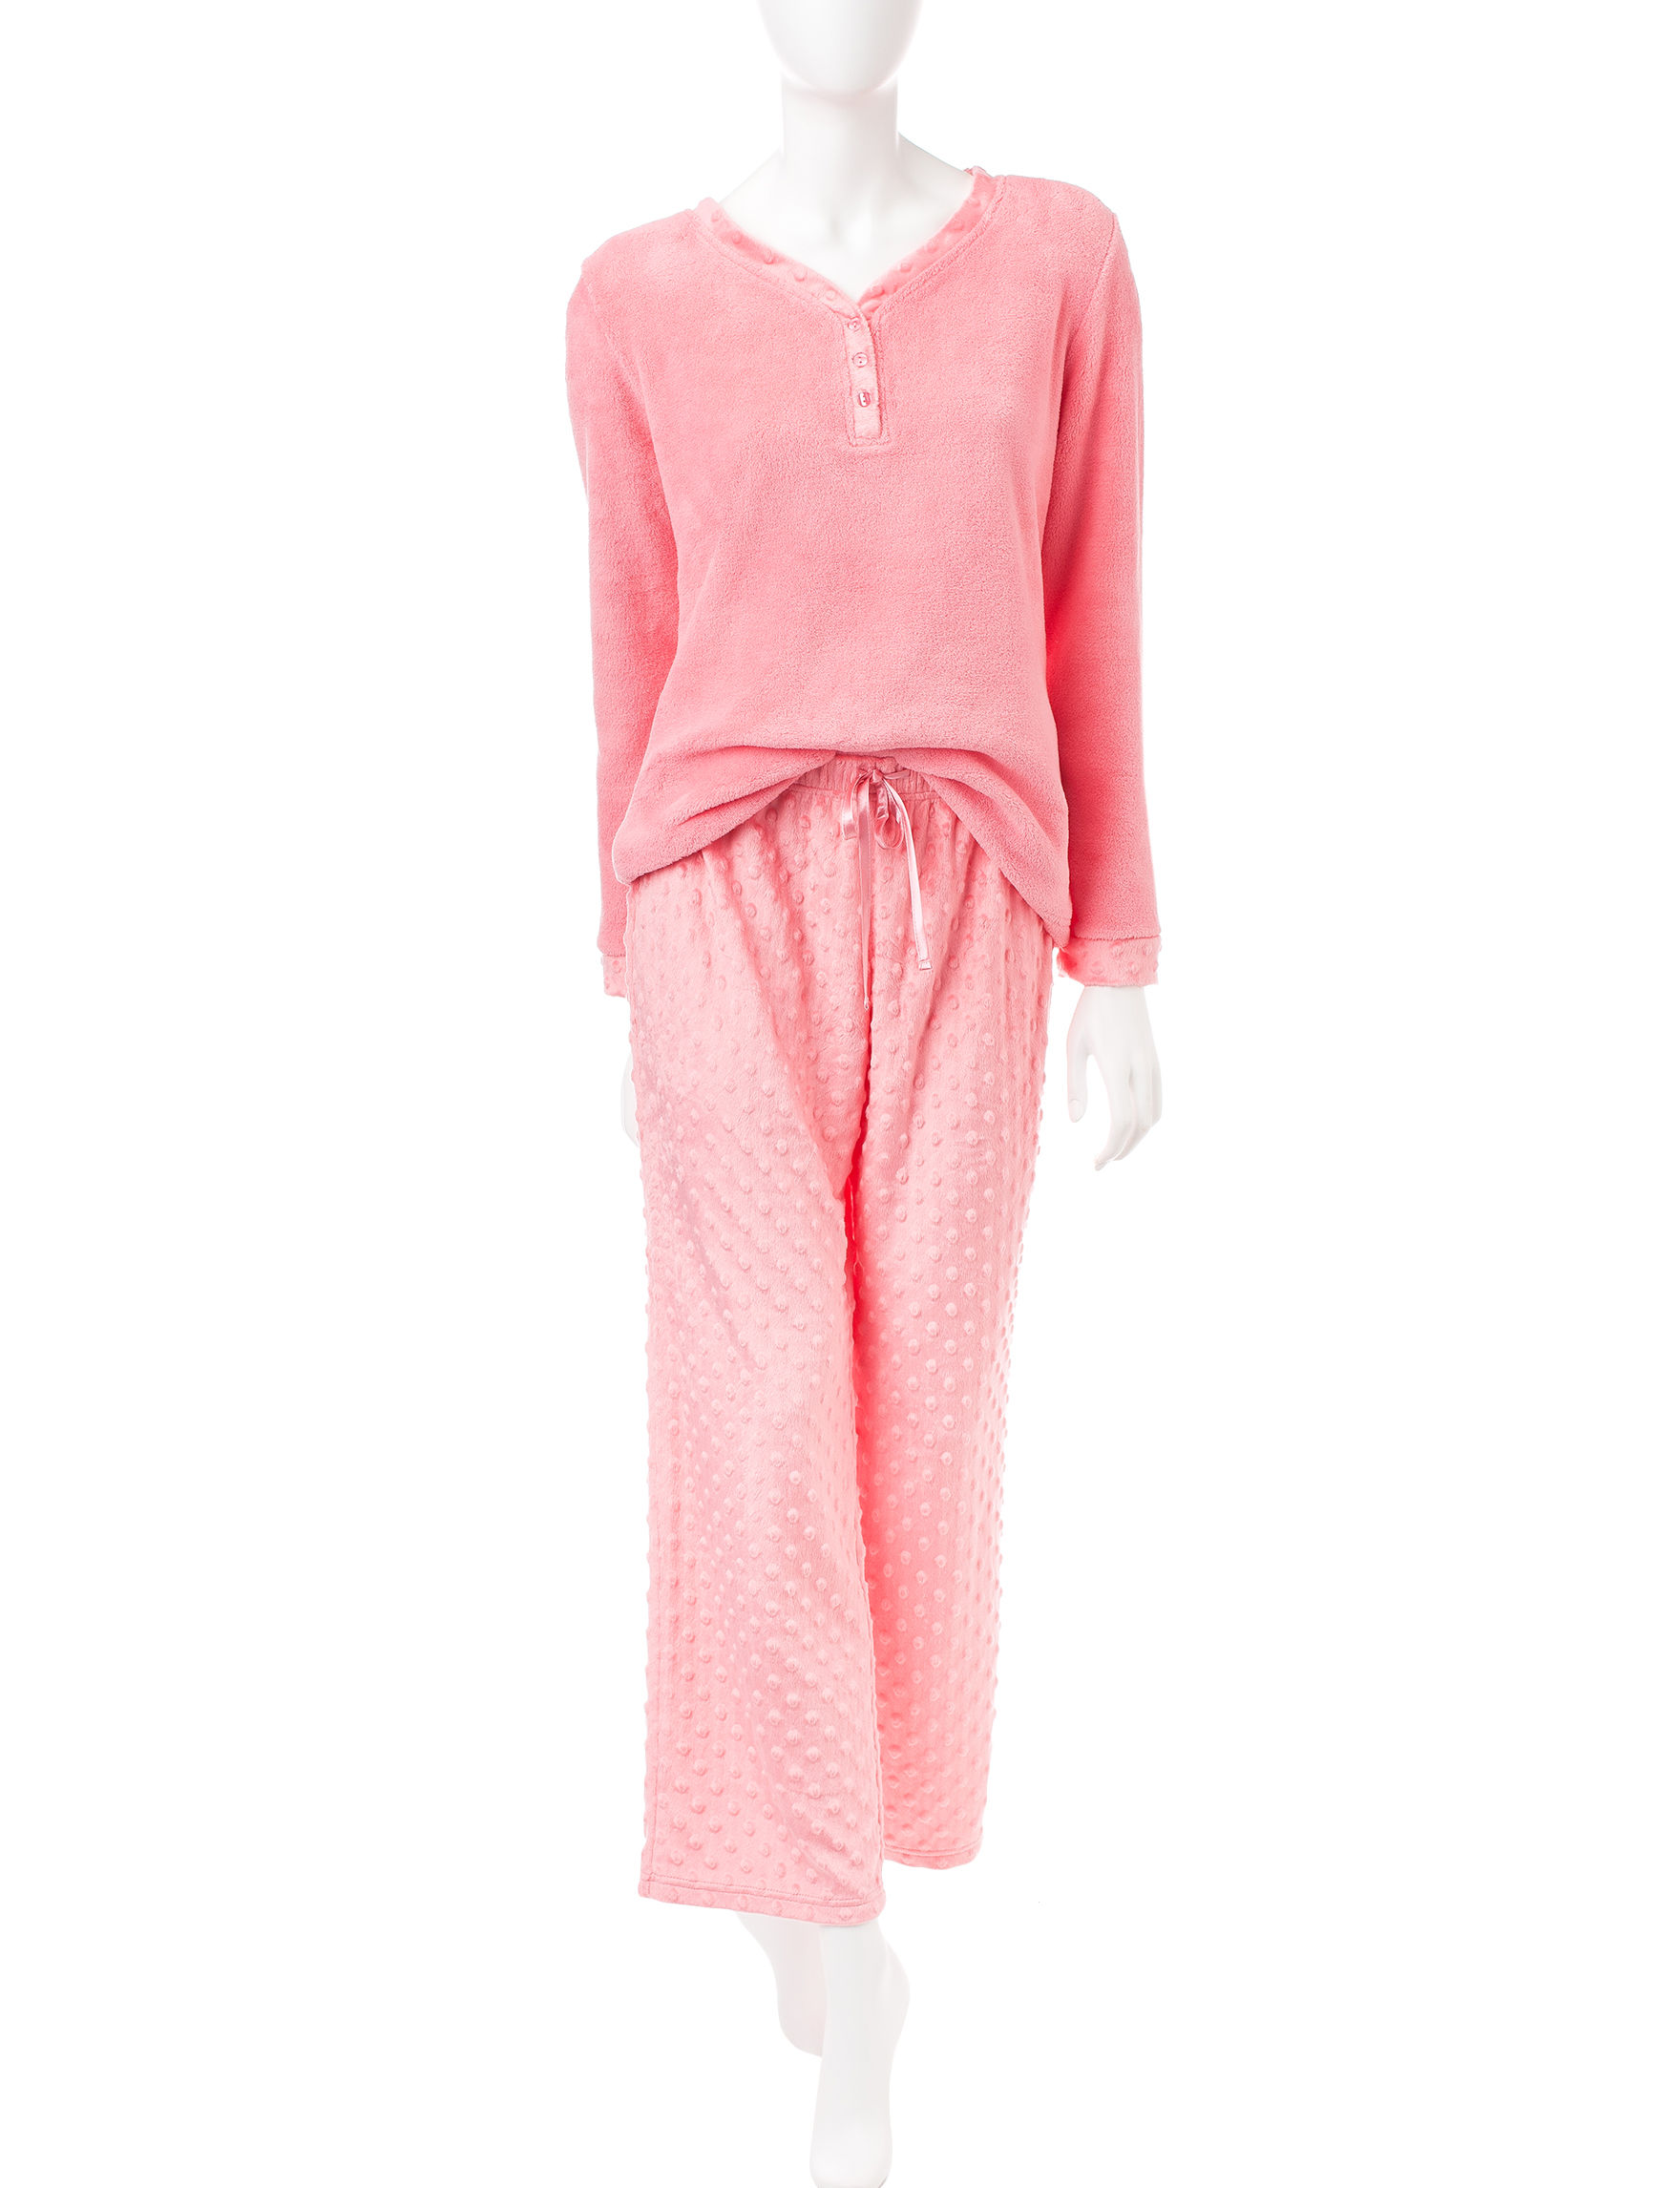 Hannah Orange Pajama Sets